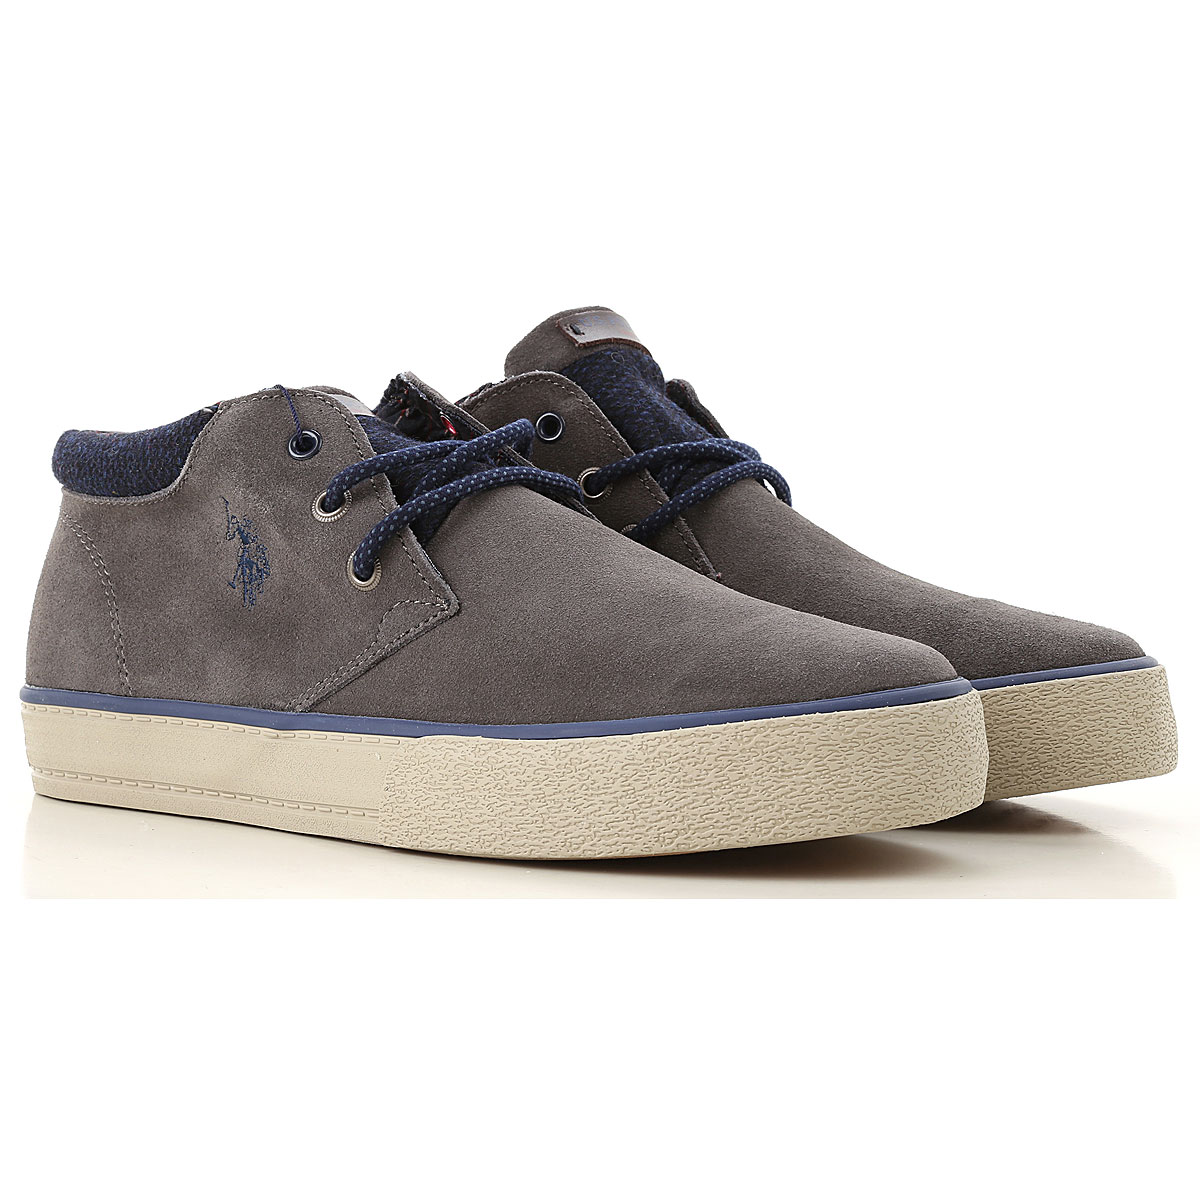 Image of U.S. Polo Sneakers for Men, Anthracite Grey, Suede leather, 2017, UK 6 - EUR 40 - US 7 UK 7 - EUR 41 - US 8 UK 8 - EUR 42 - US 9 UK 9 - EUR 43 - US 10 UK 10 - EUR 44 - US 11